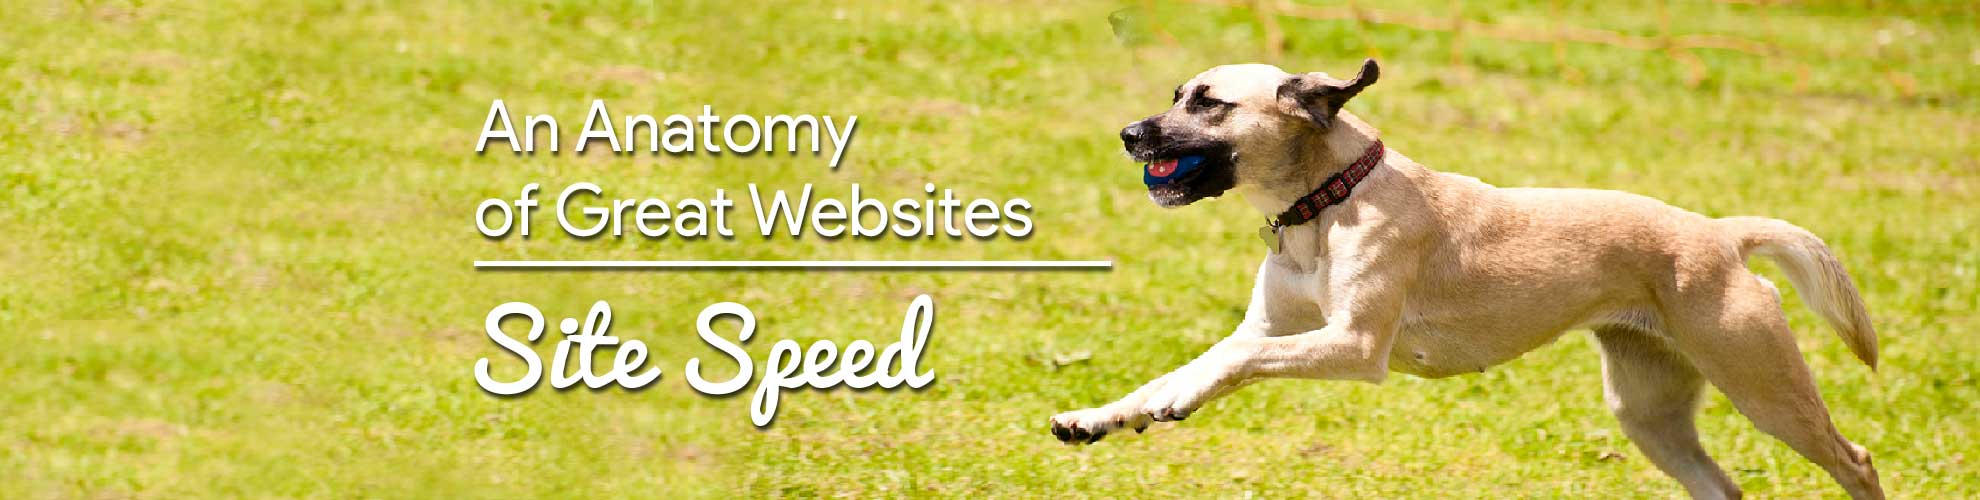 How to Increase my Site Speed | Part 1 of the Anatomy of Great Websites